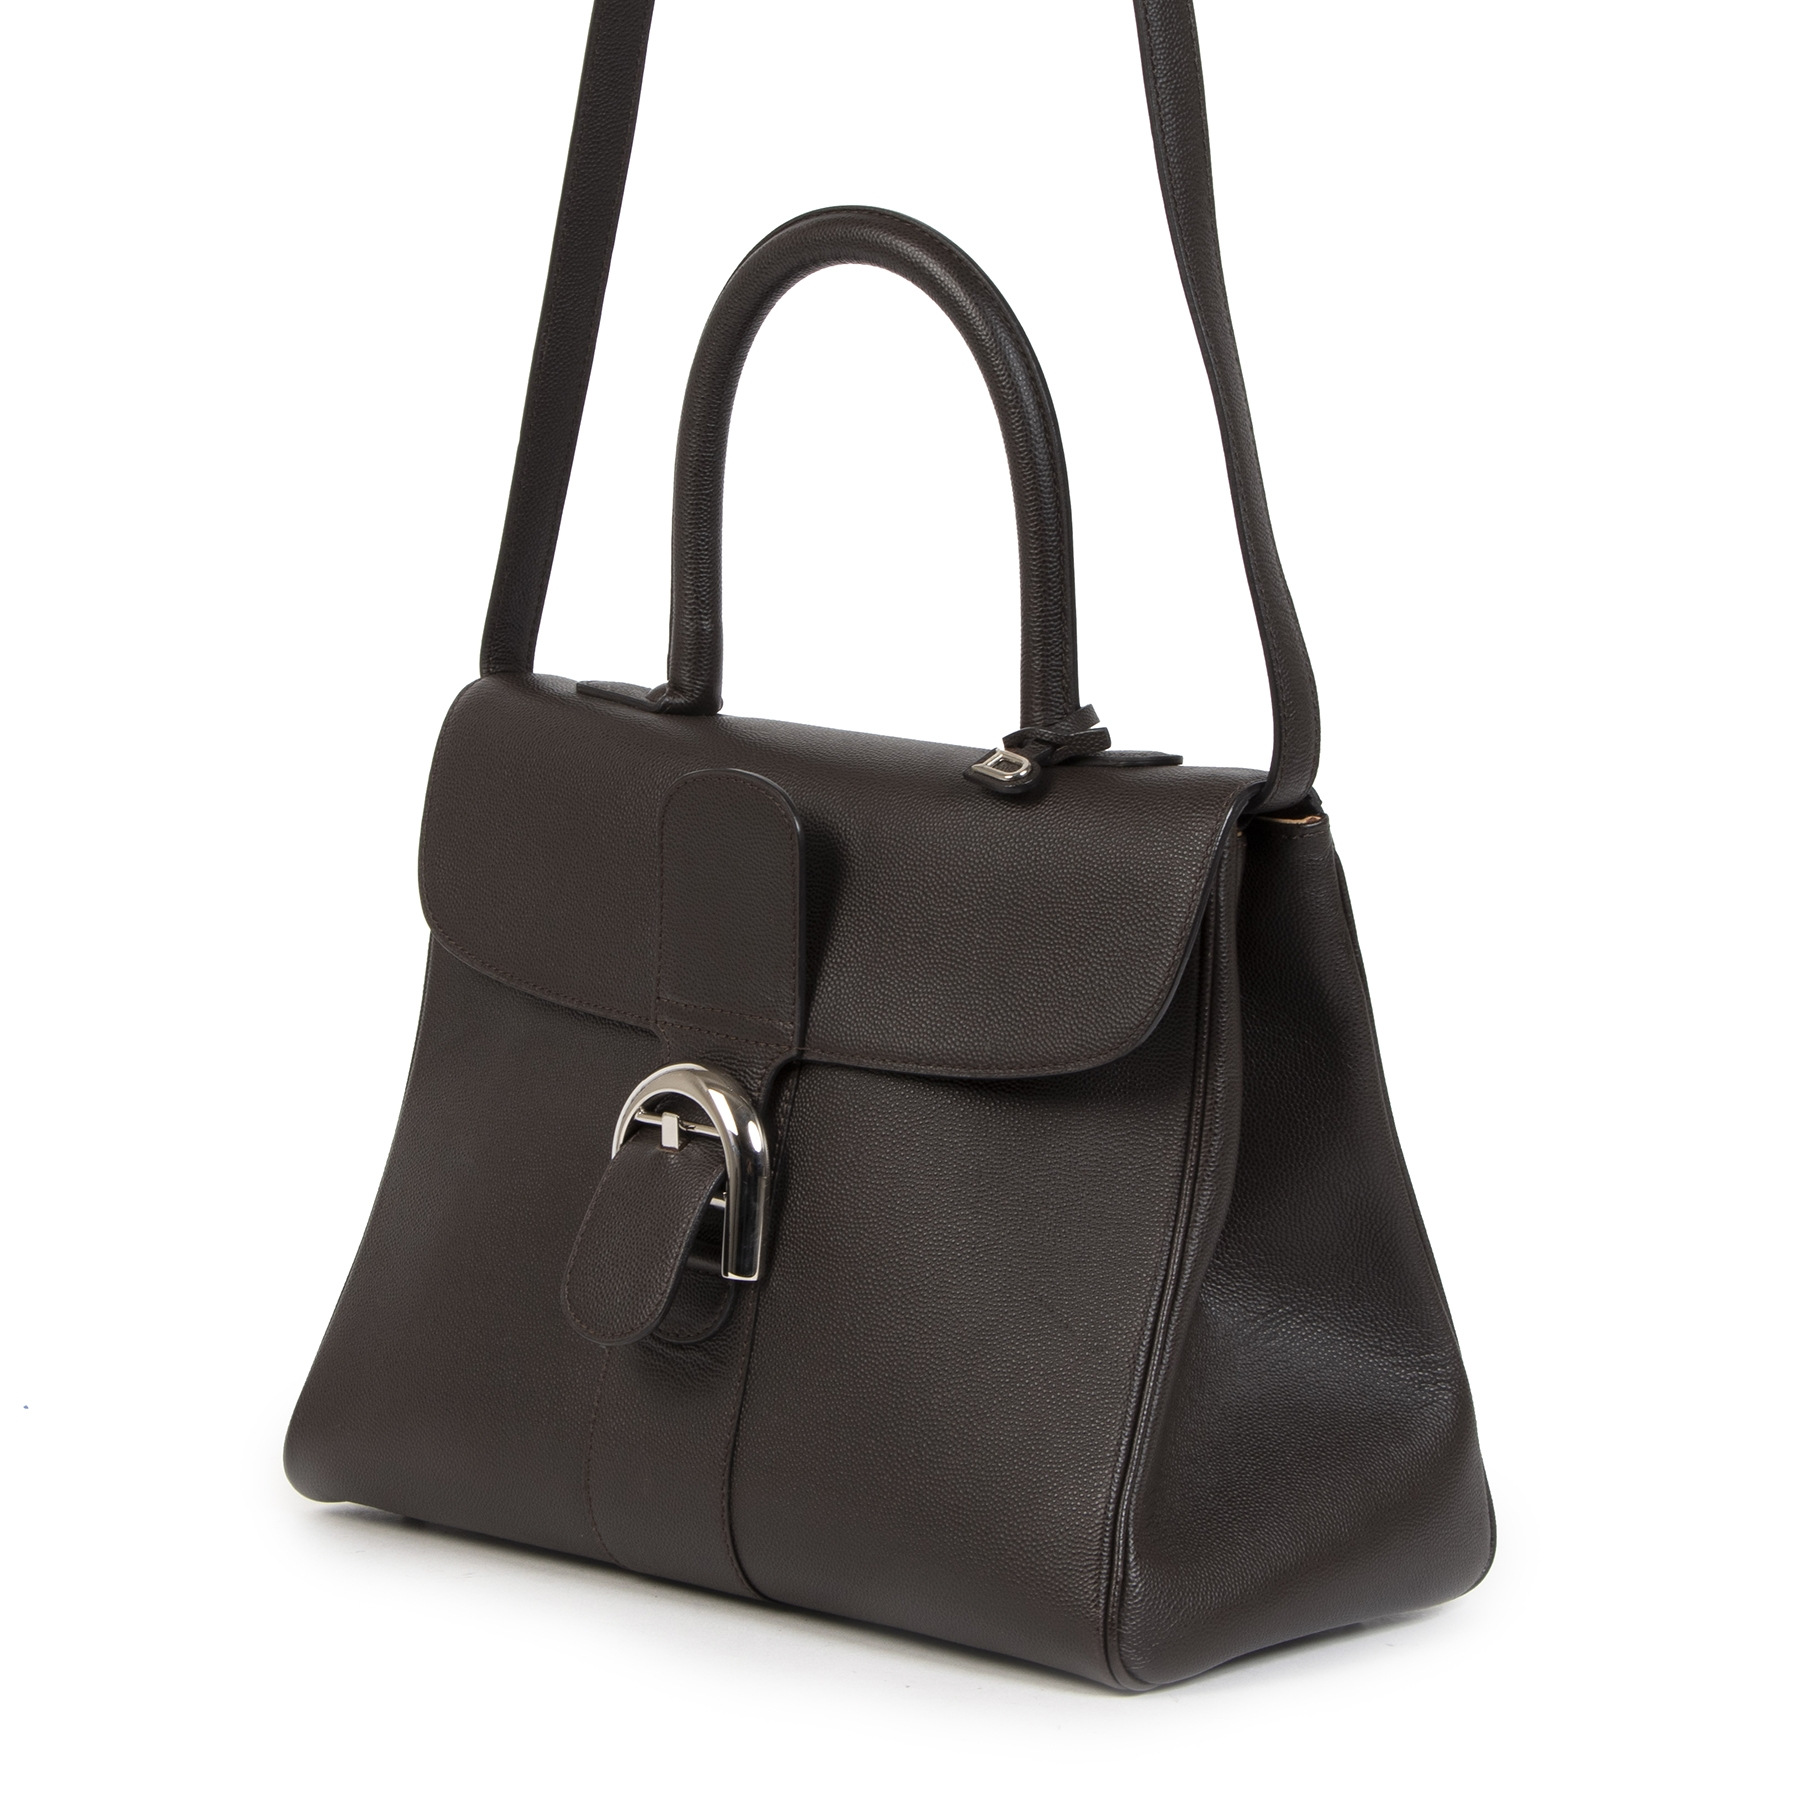 Buy authentic secondhand Delvaux Brillant Dark Grey MM  at the right price at LabelLOV vintage webshop. Safe and secure online shopping. Koop authentieke tweedehands Delvaux Brillant Dark Grey MM  met de juiste prijs bij LabelLOV